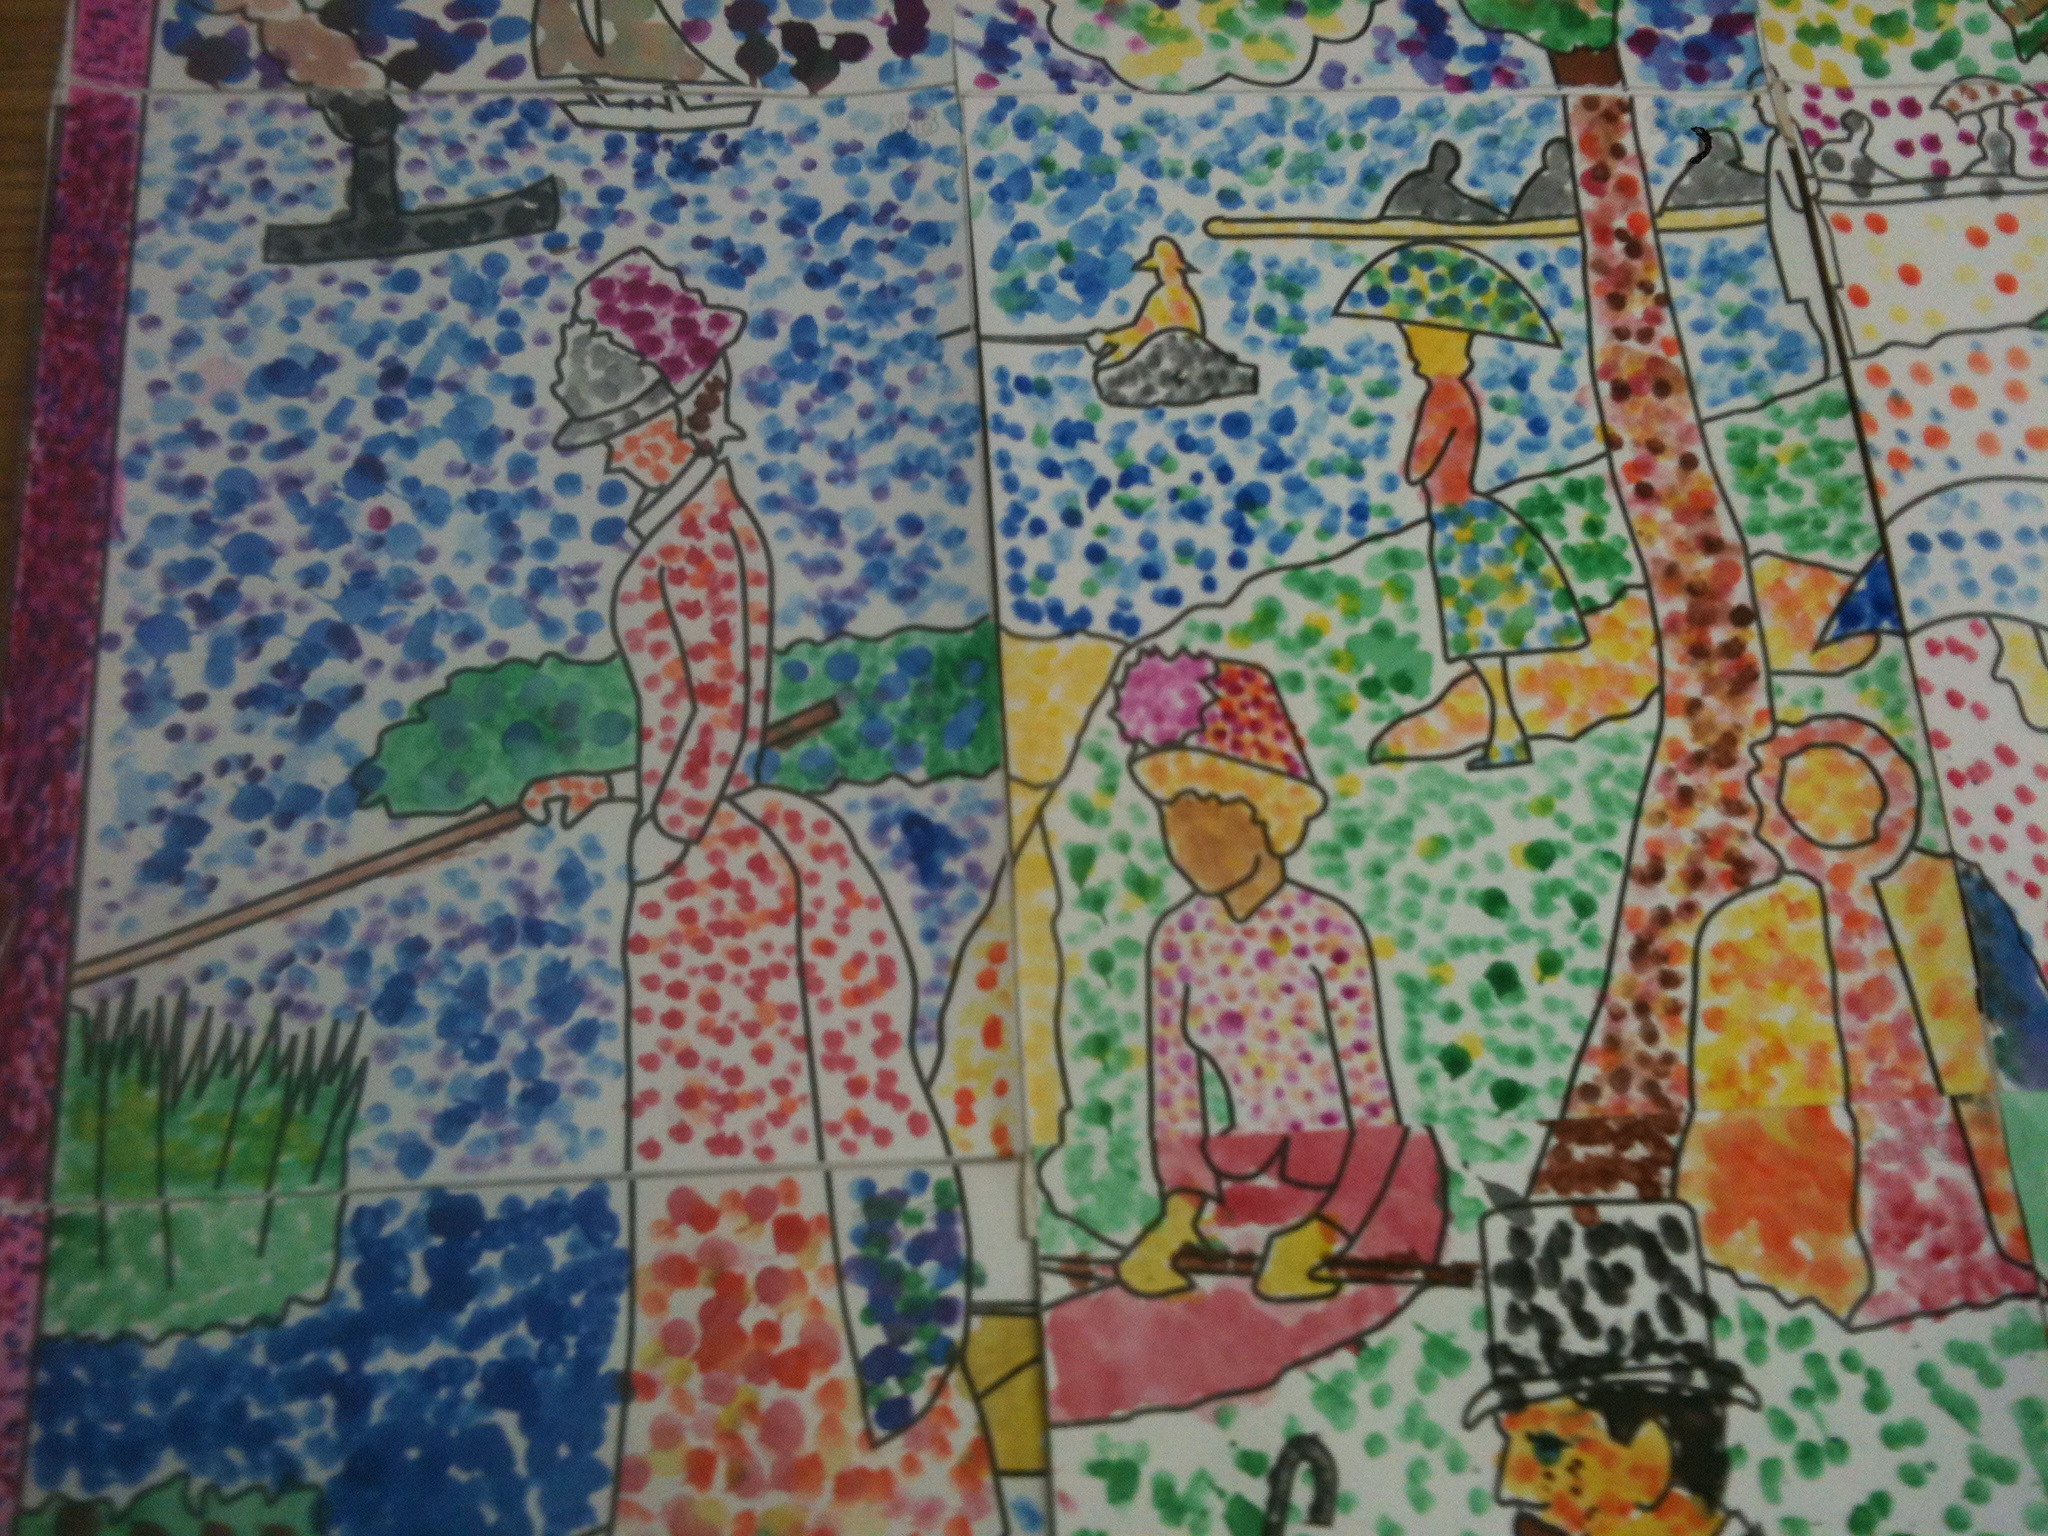 Seurat Pointillism Mural (and more!)